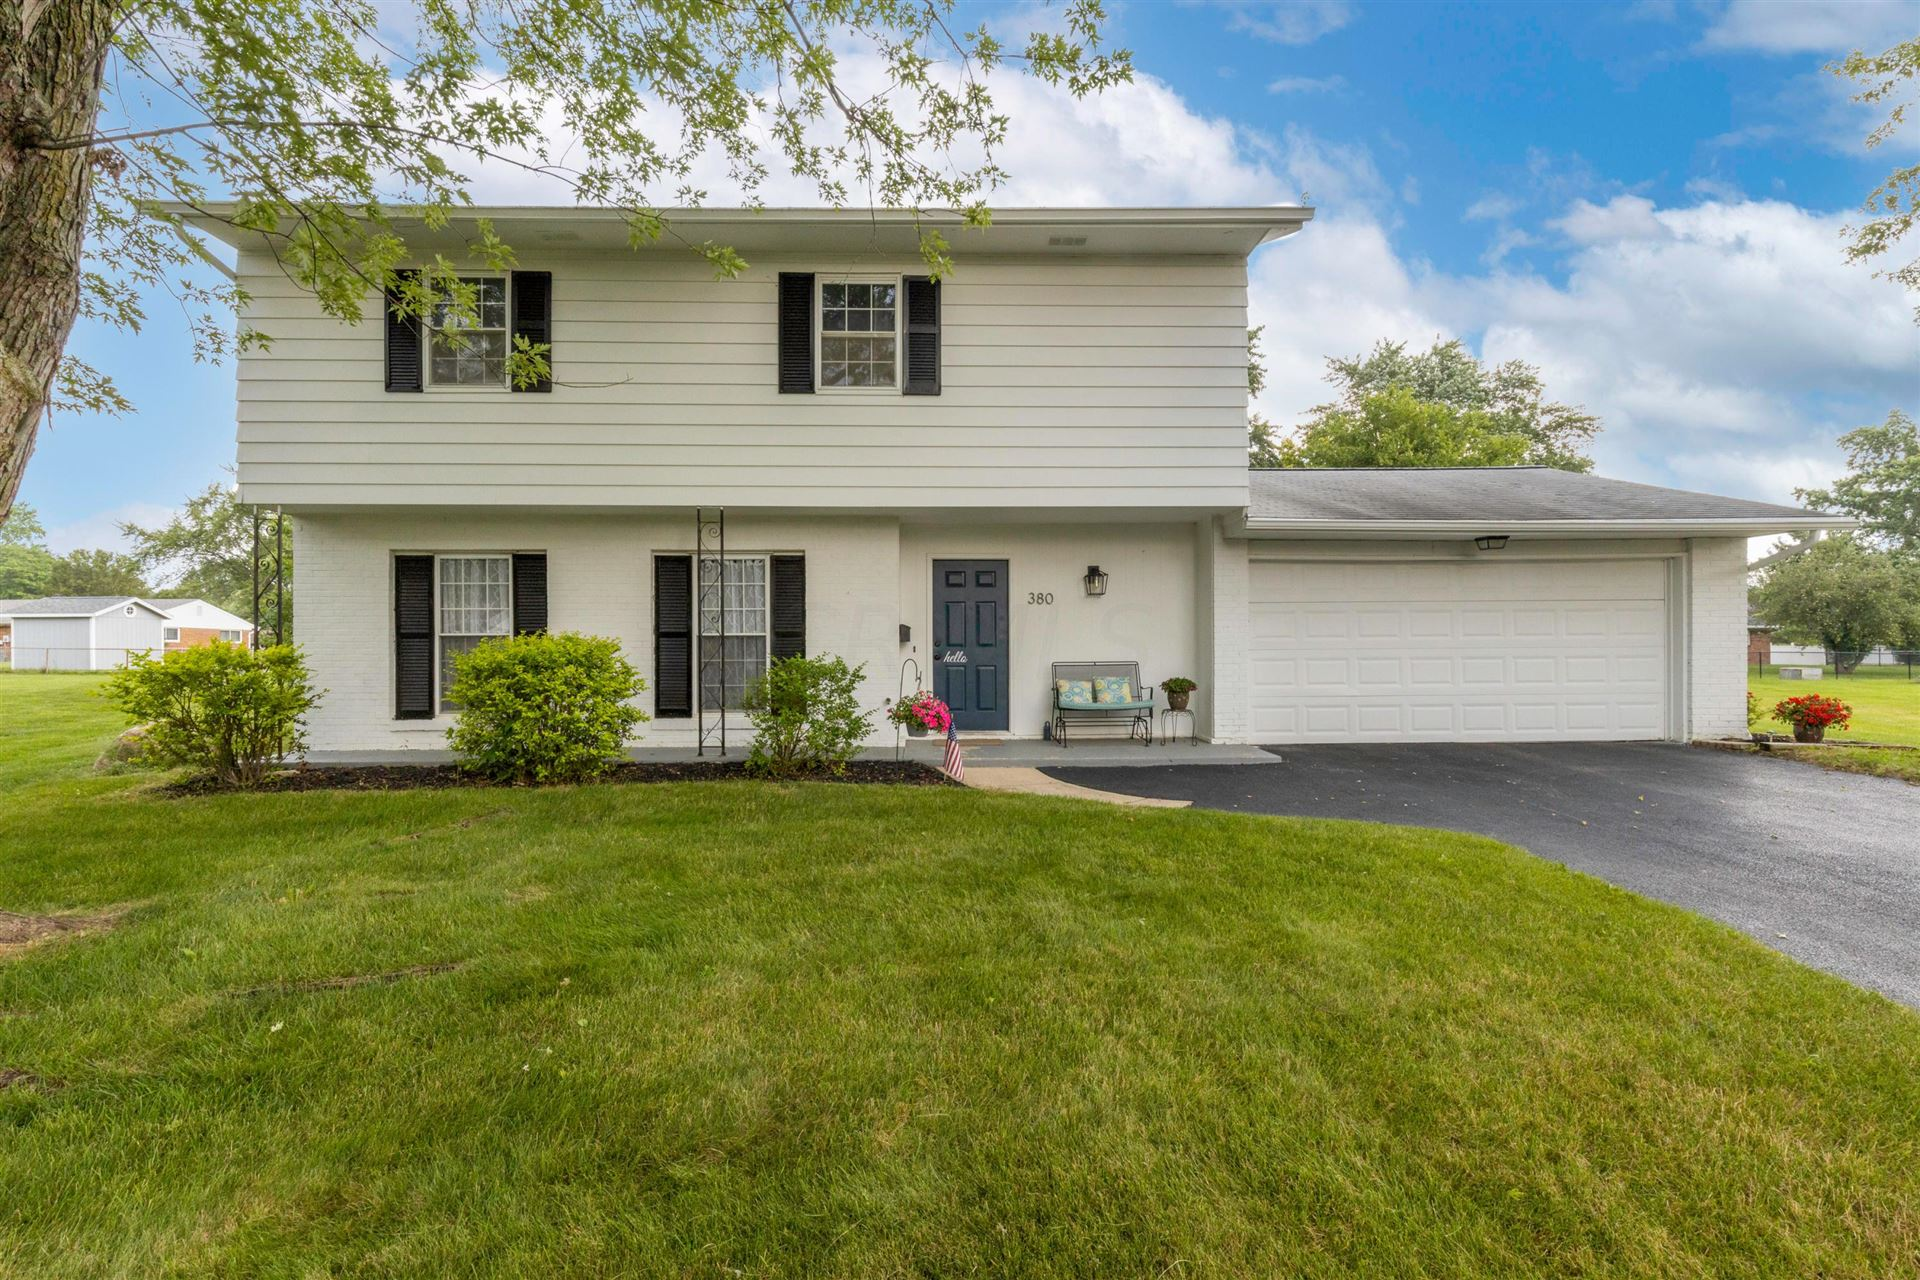 Photo of 380 Naples Place, Westerville, OH 43081 (MLS # 221028849)